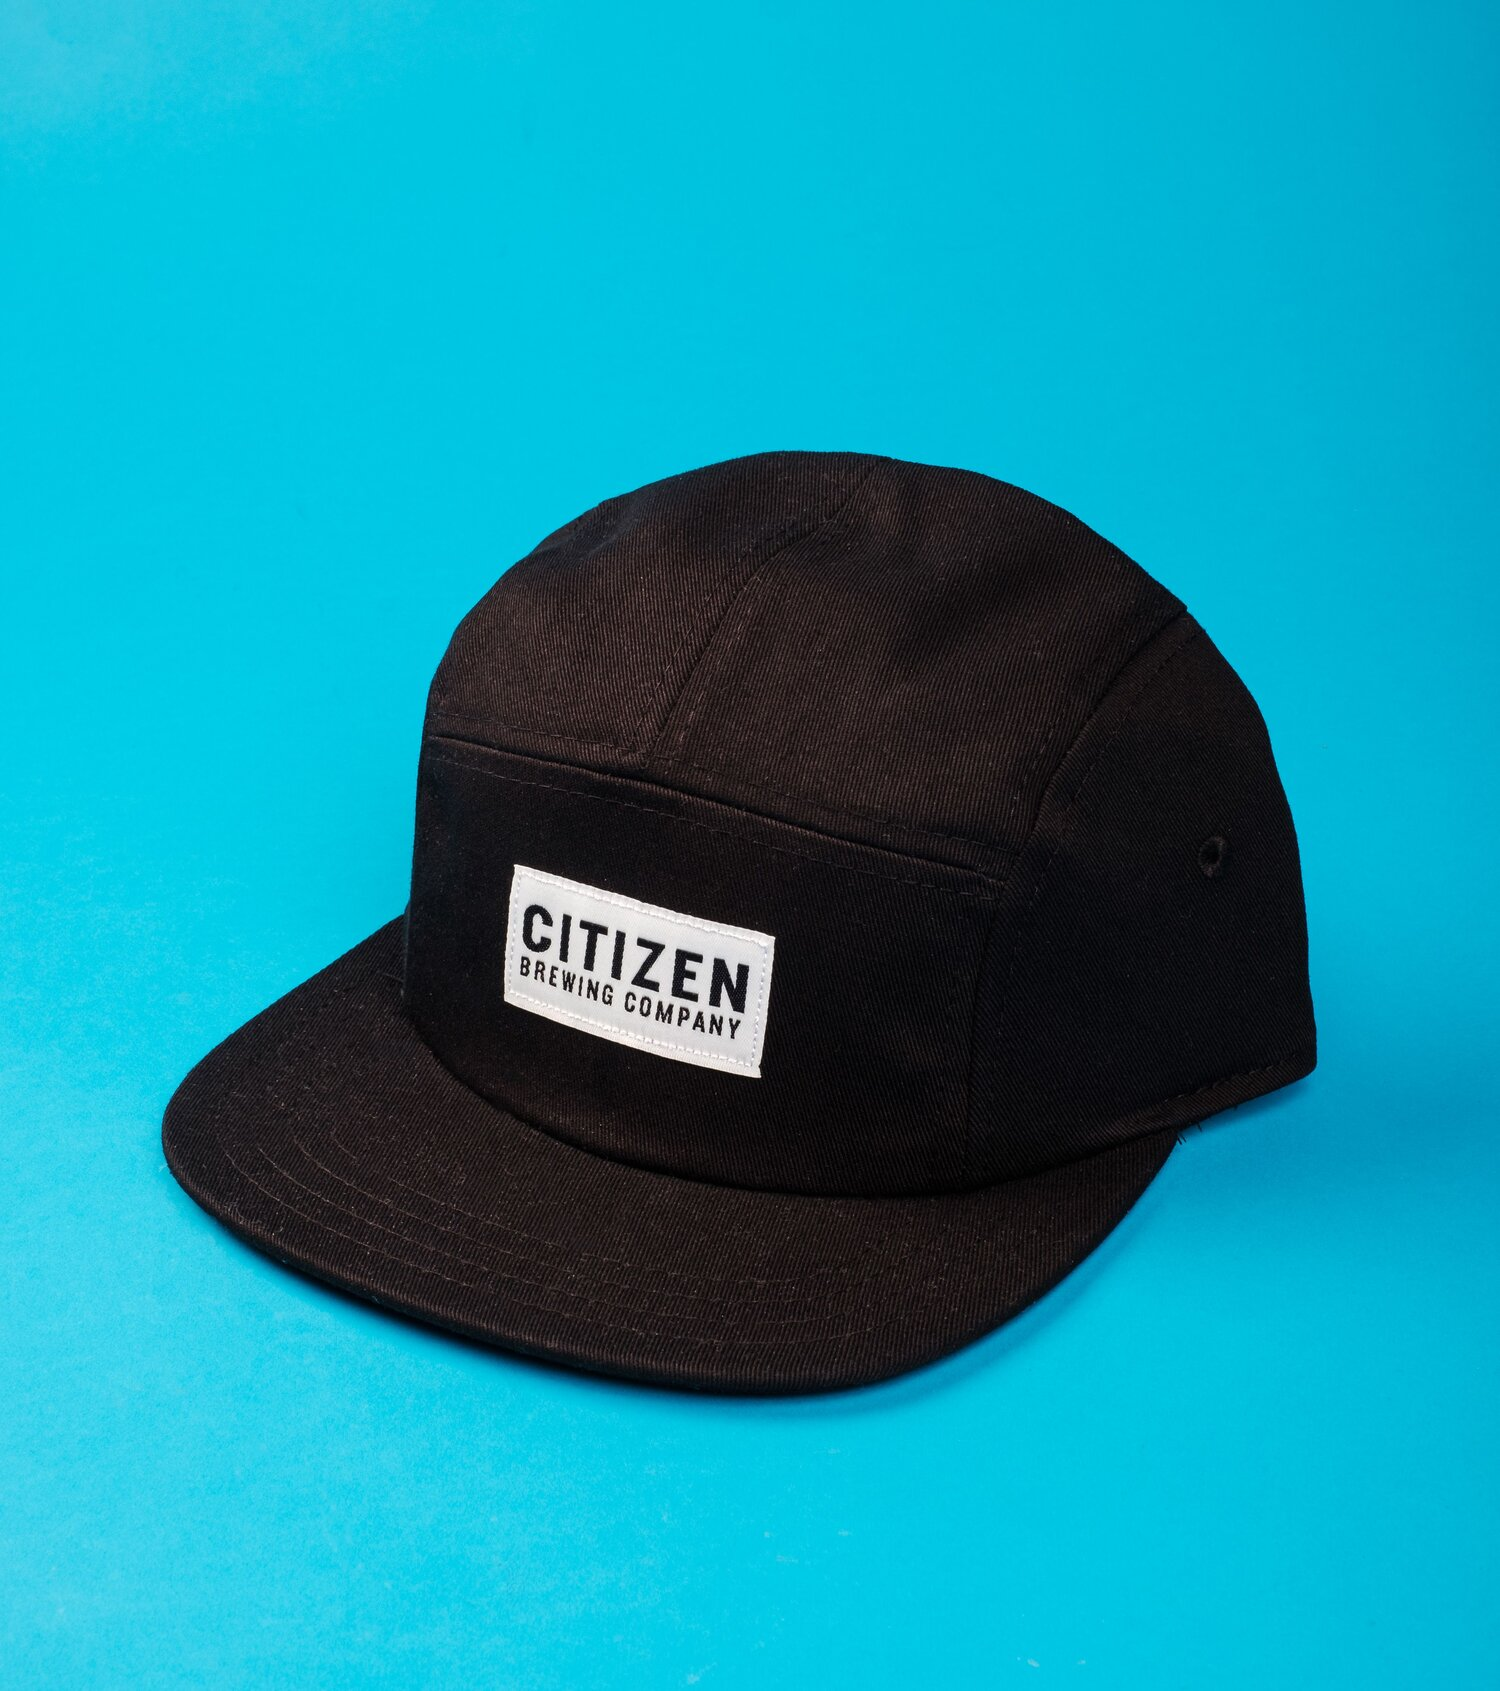 5-panel hat with logo patch   Citizen Brewing Company   Northeast Calgary Brewery